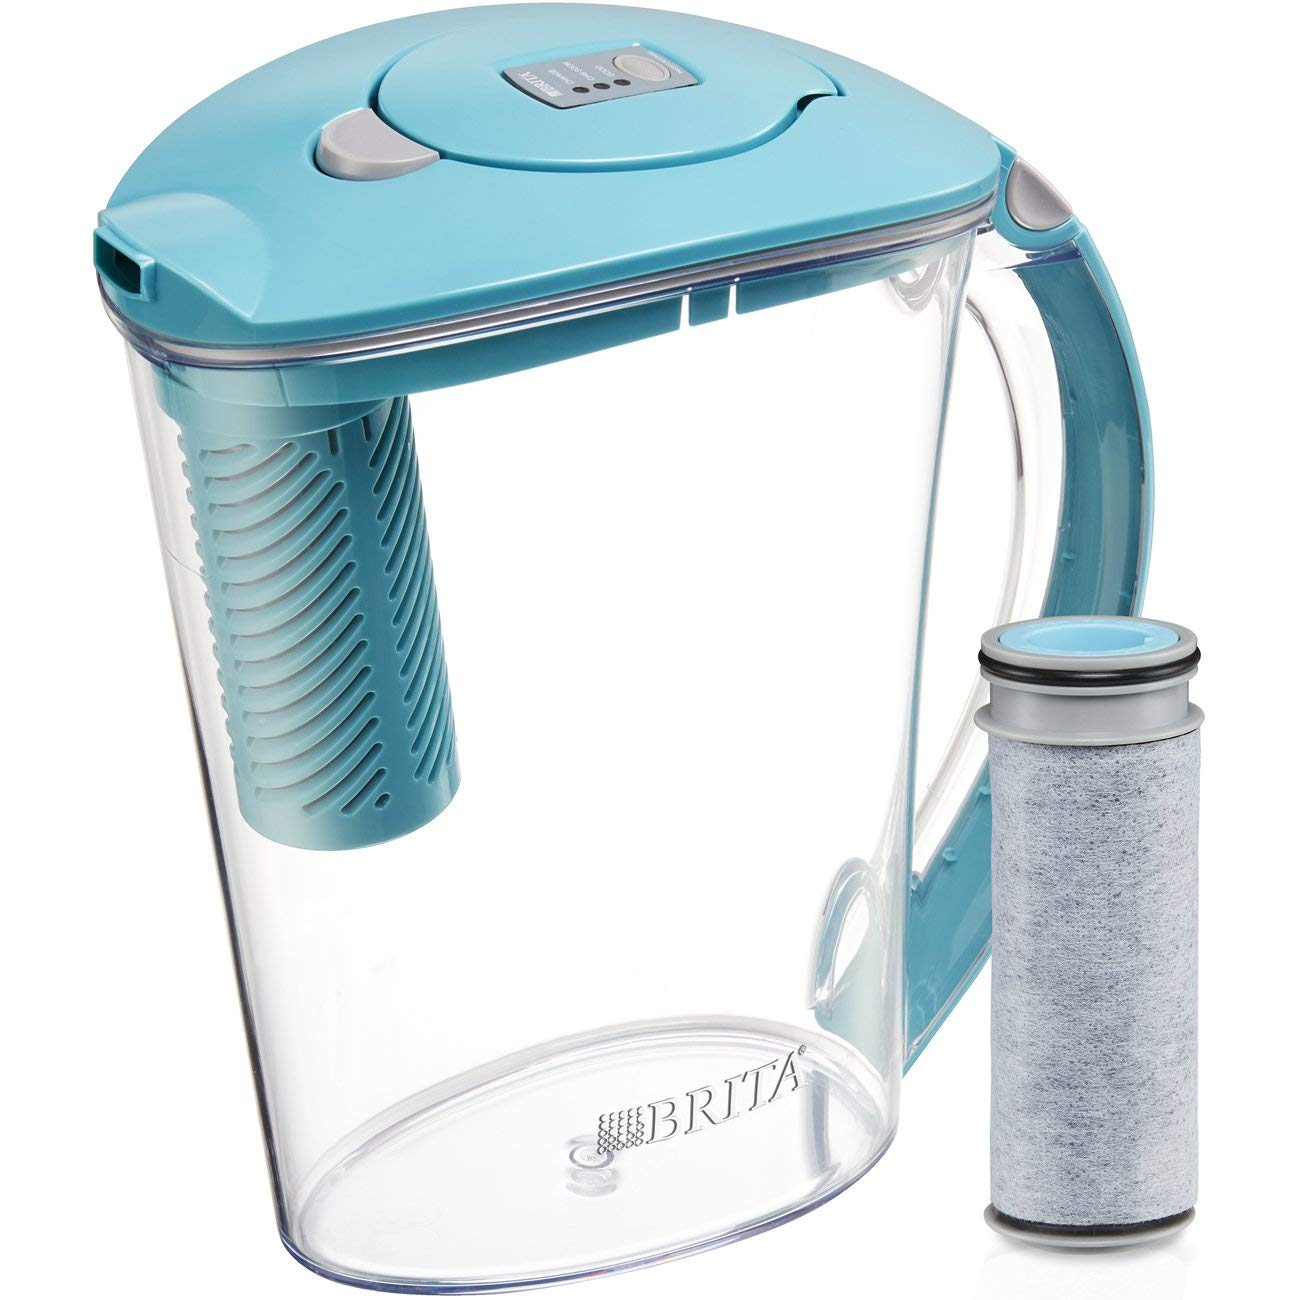 Brita Large 10 Cup Stream Filter as You Pour Water Pitcher with 1 Filter, Rapids, BPA Free, Available in Multiple Colors by Brita